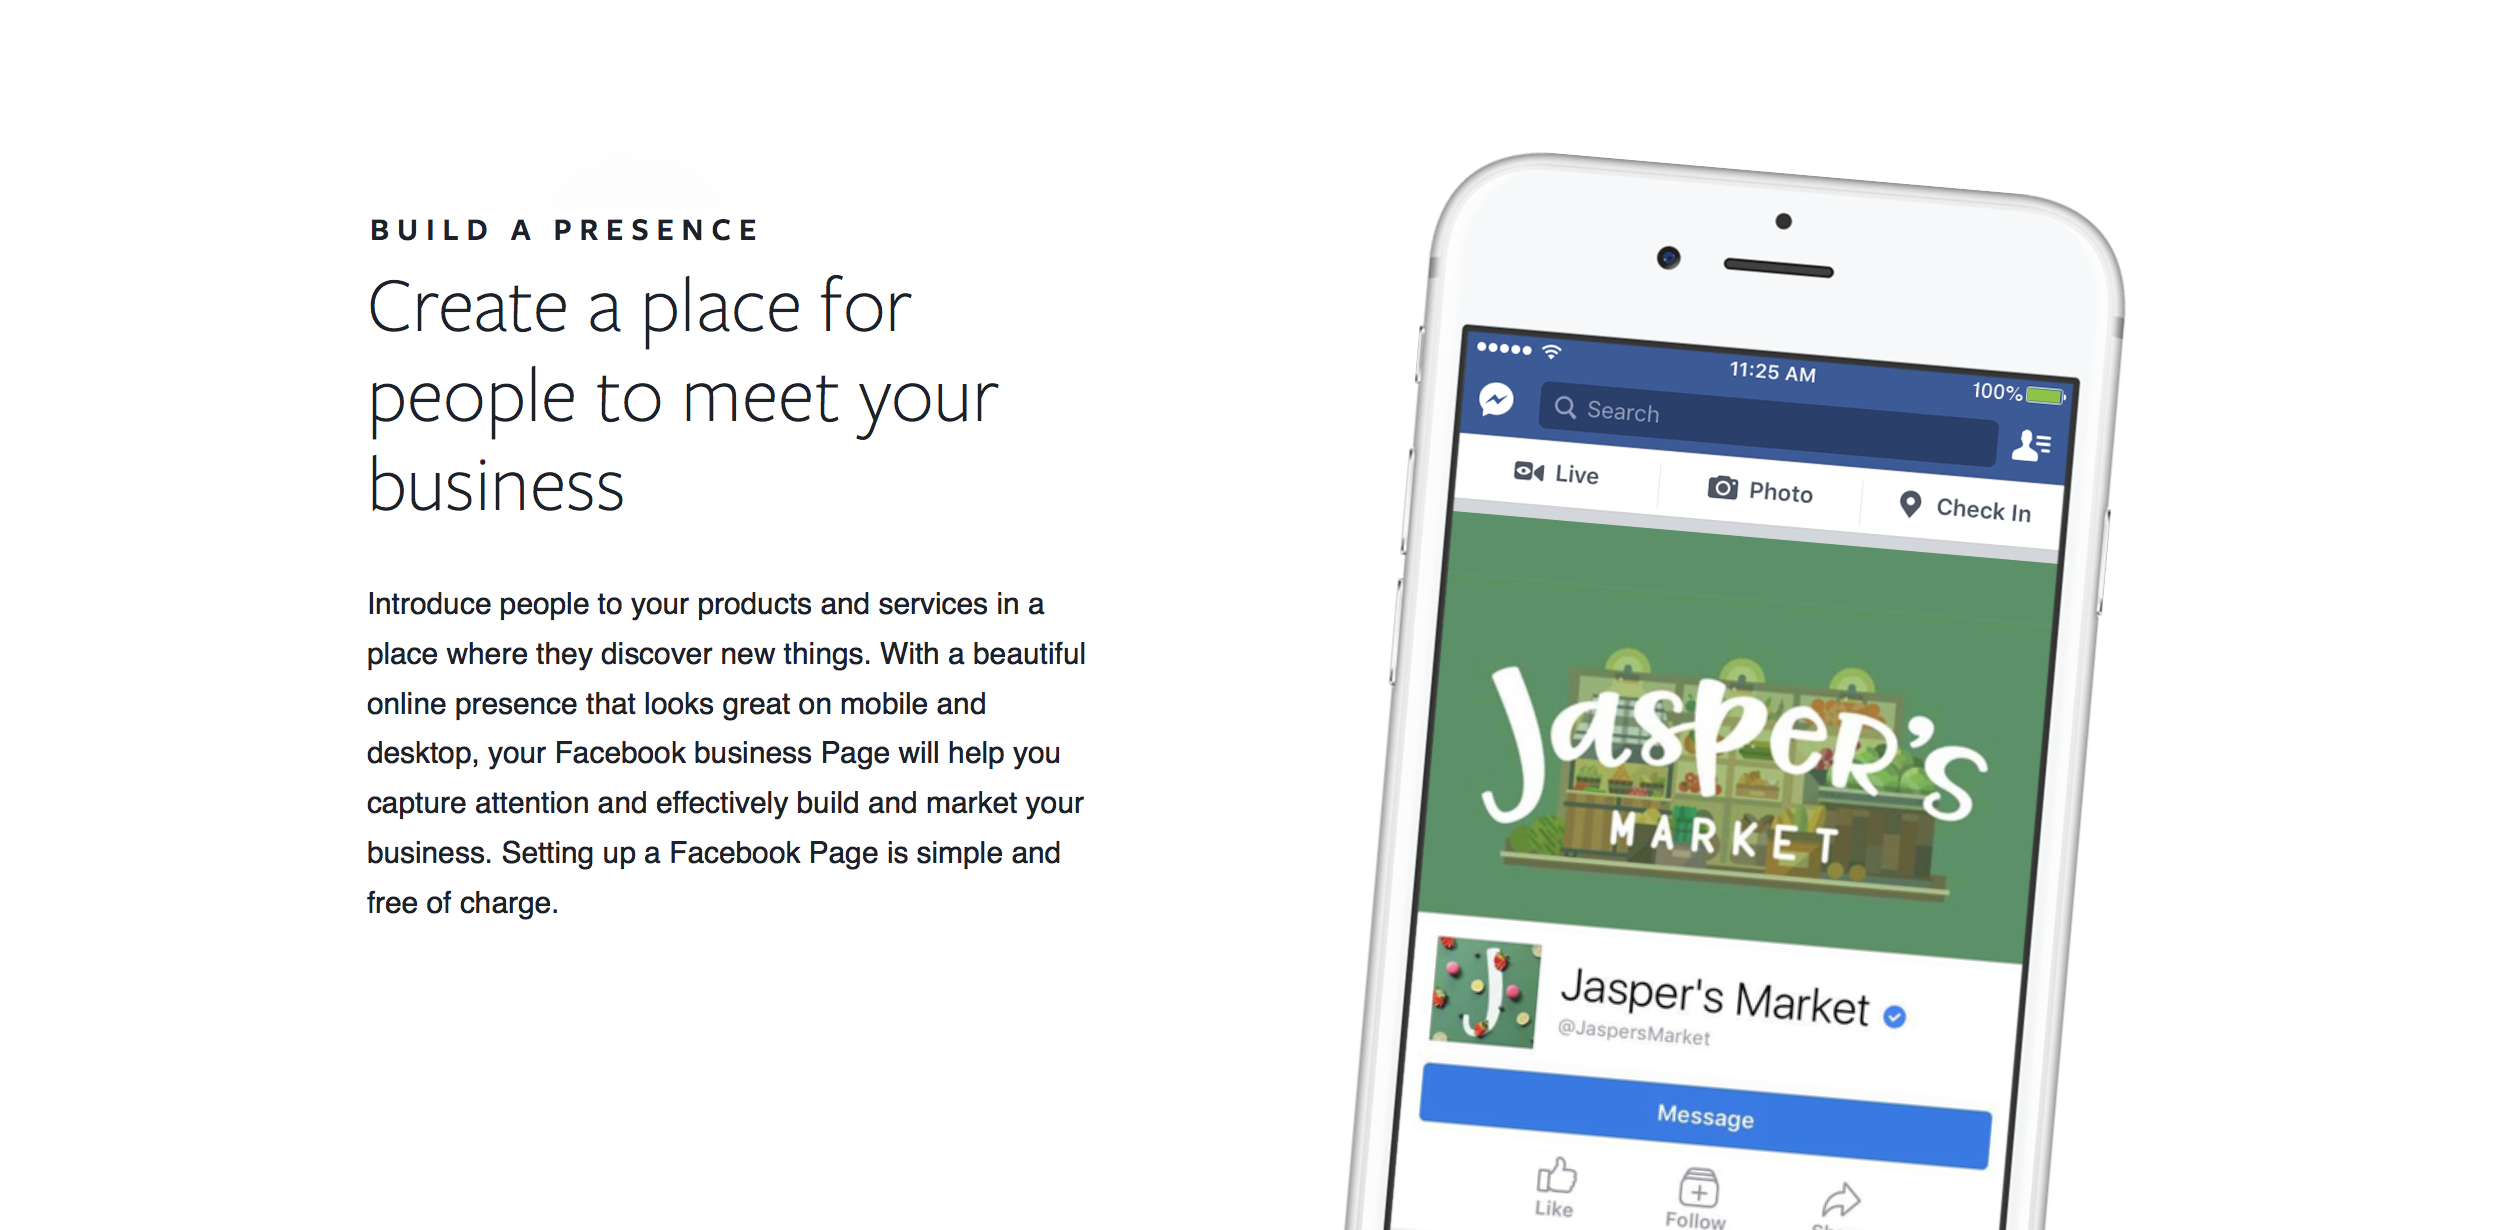 Learn more about Facebook's Business Pages